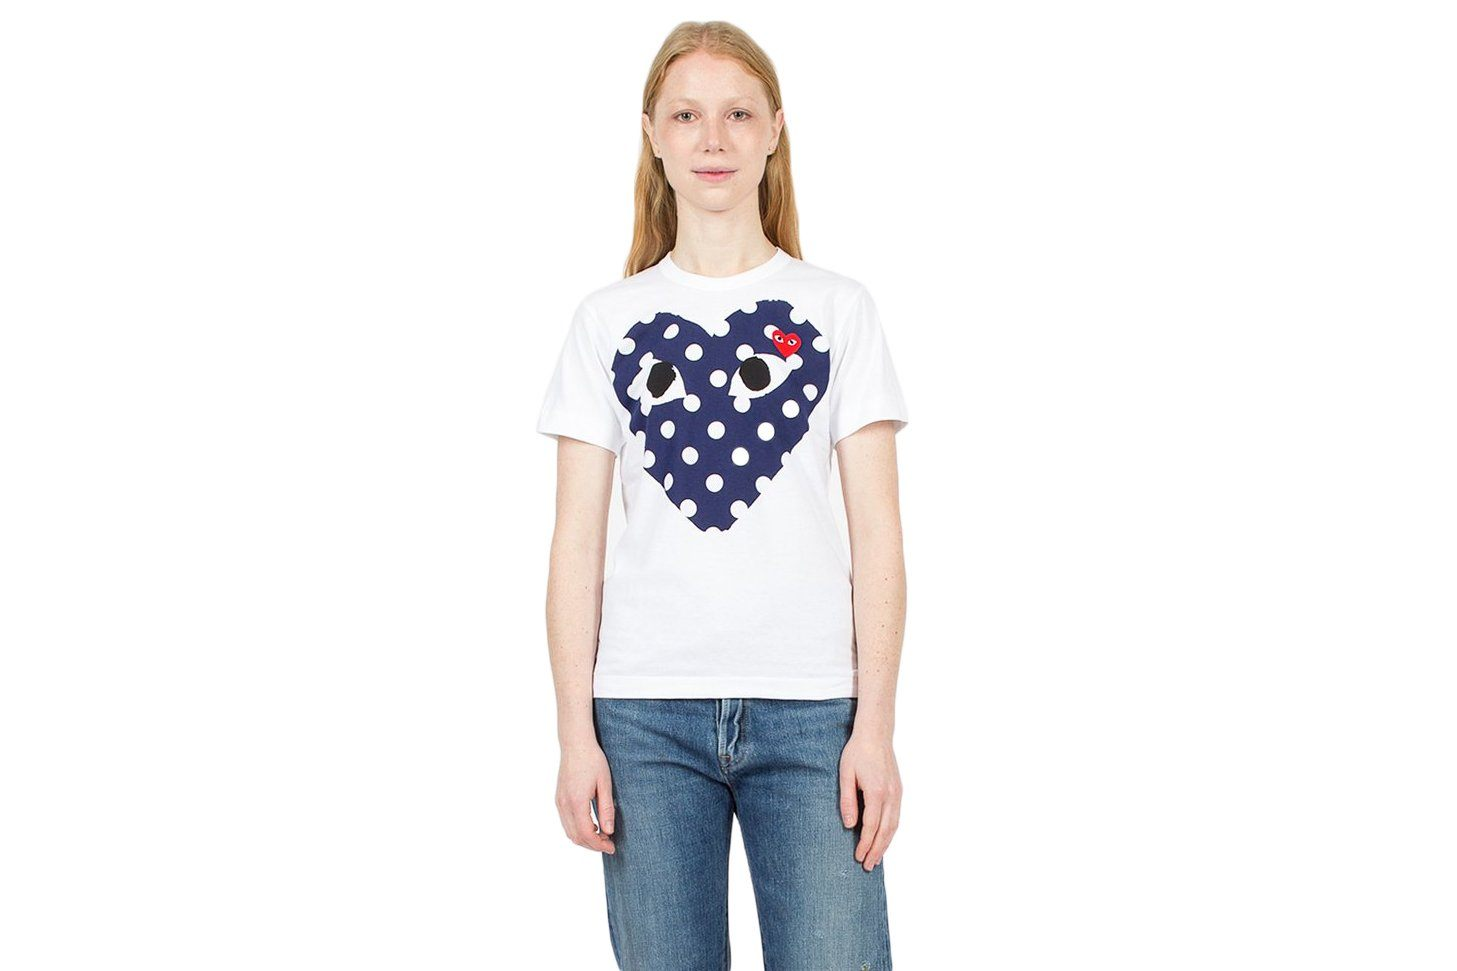 BIG POLKA DOT HEART/SMALL RED HEART WOMENS SOFTGOODS COMME DES GARCONS